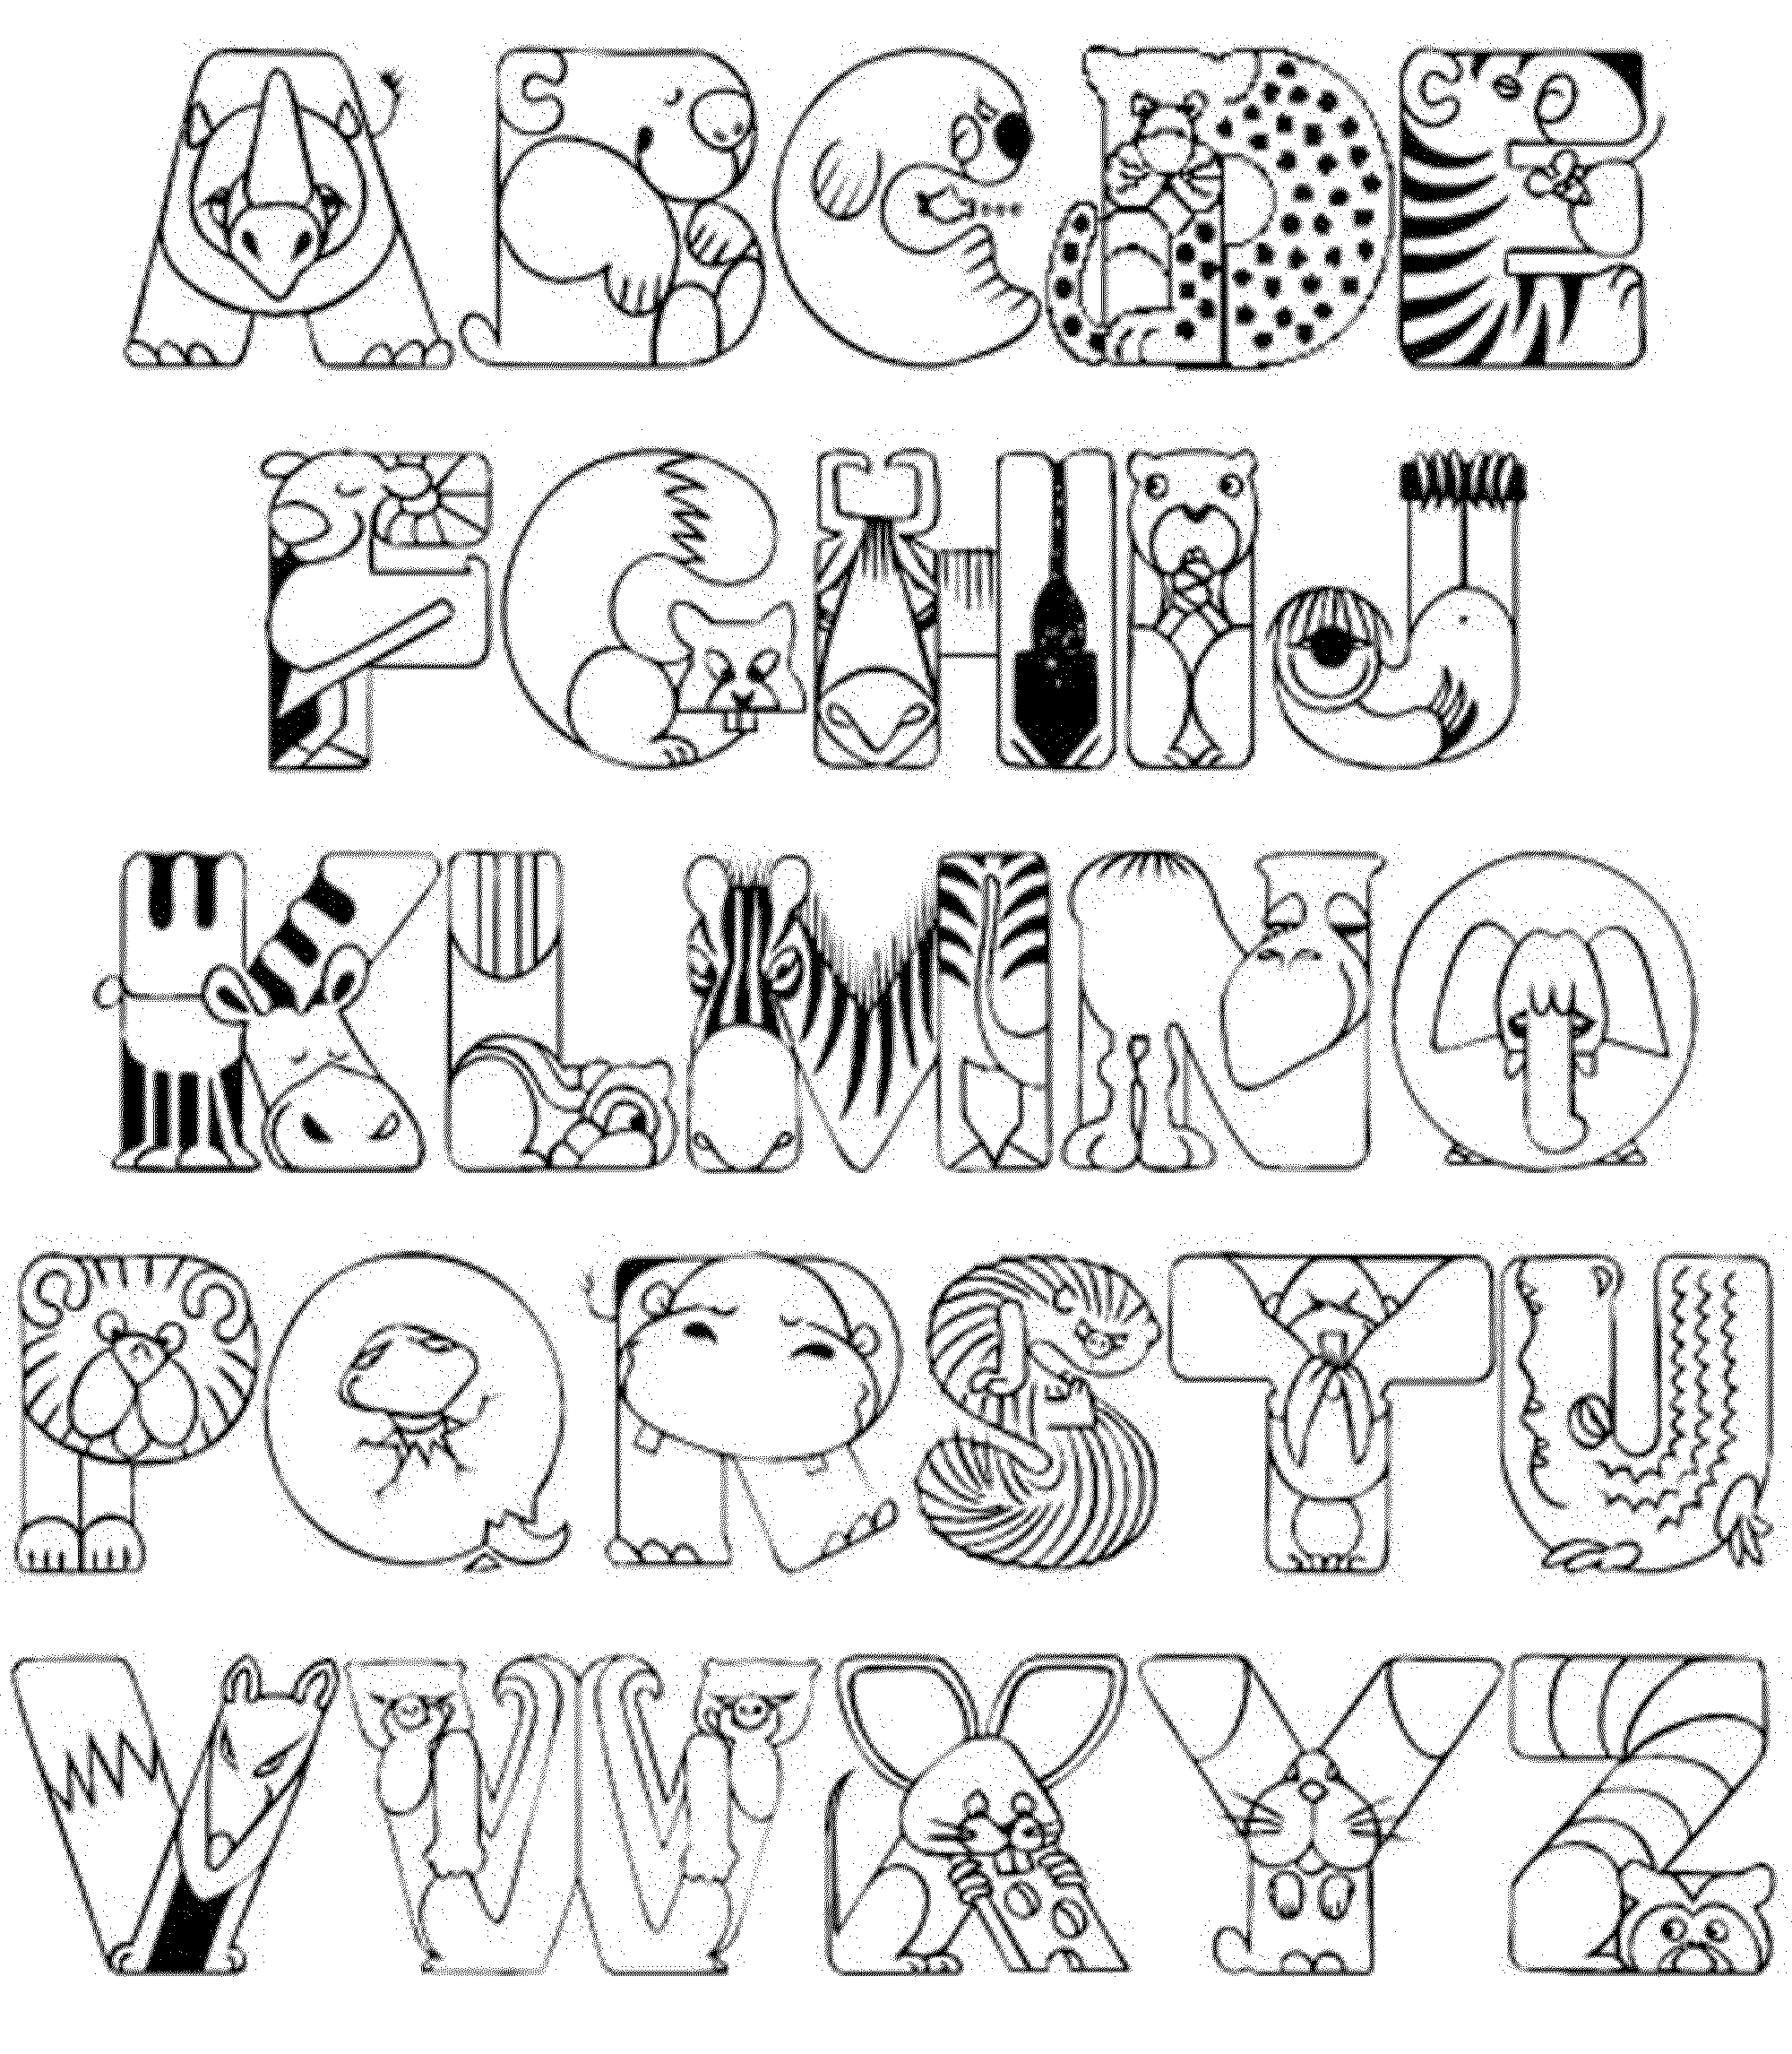 coloring worksheets abc top 10 free printable abc coloring pages online worksheets coloring abc